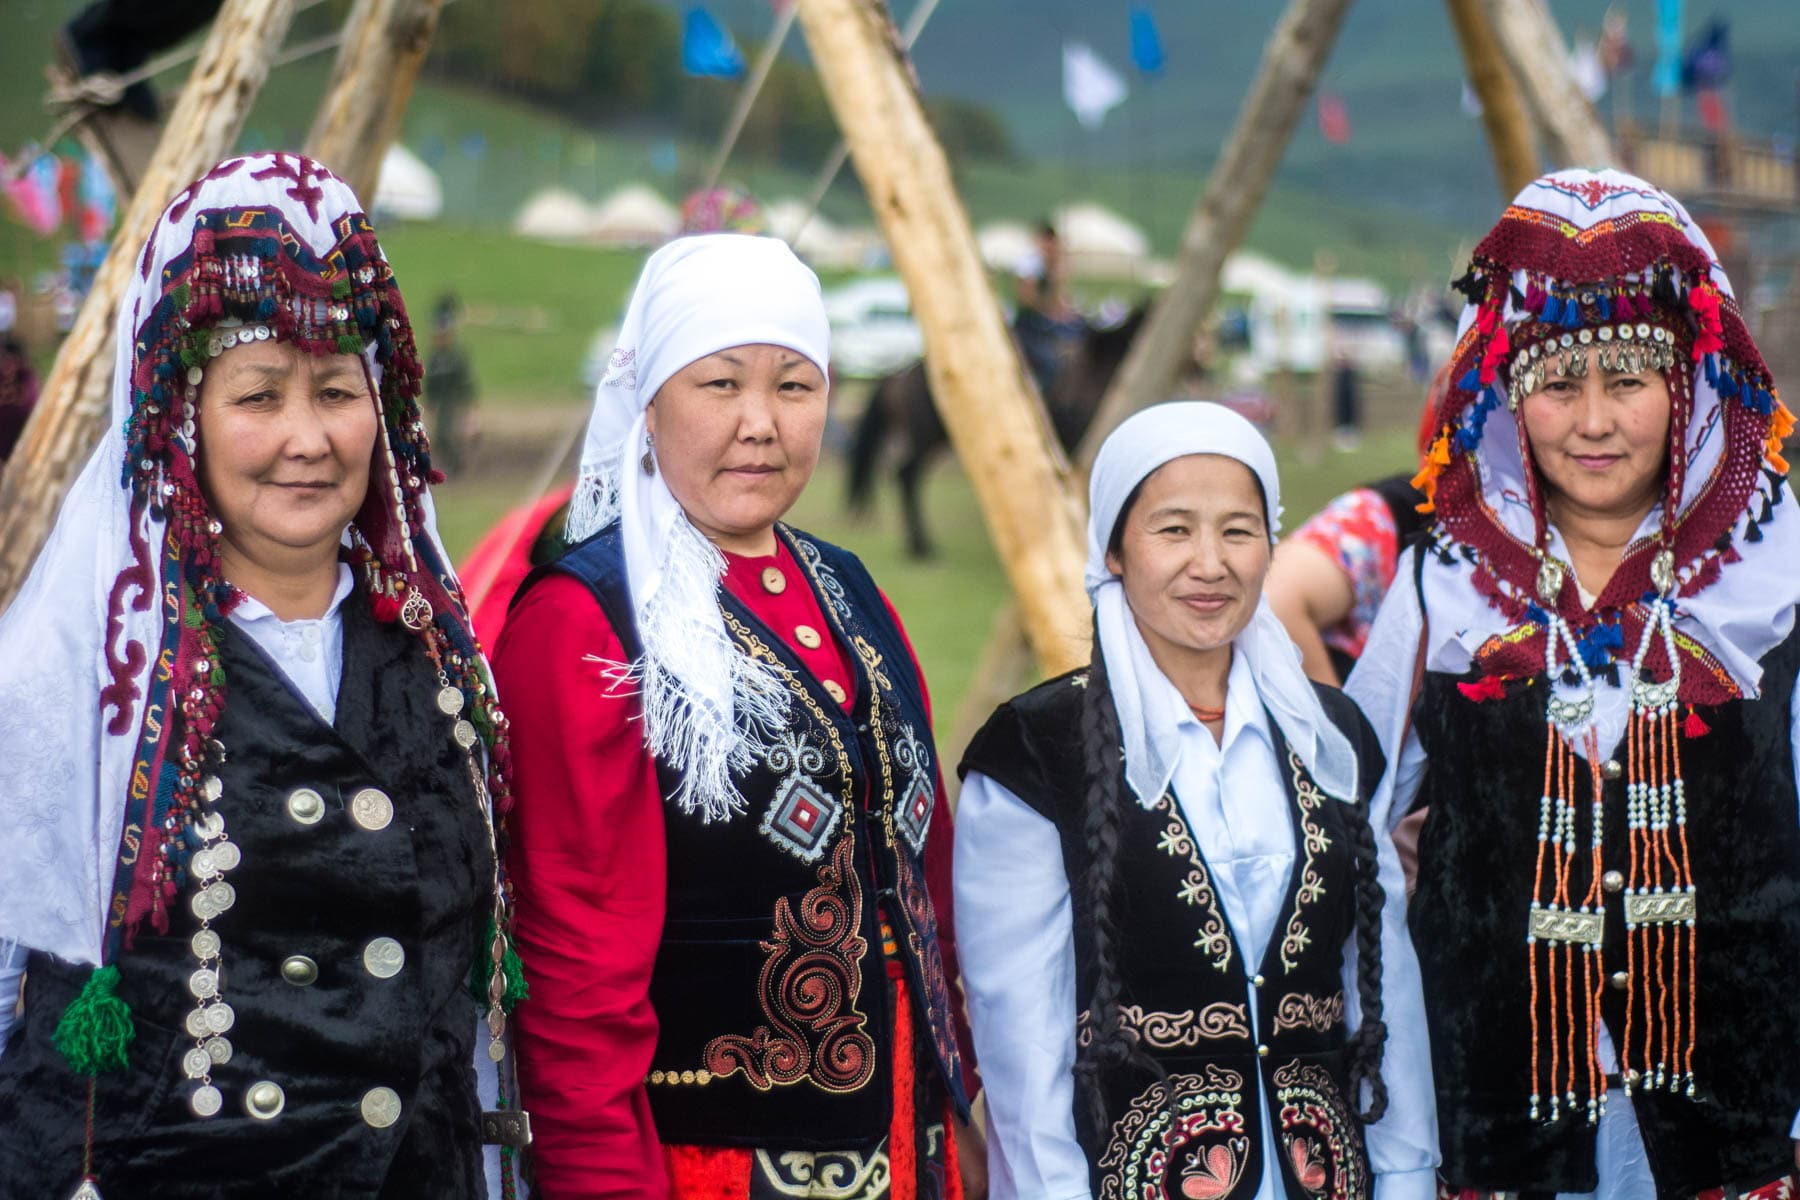 Women in traditional clothes